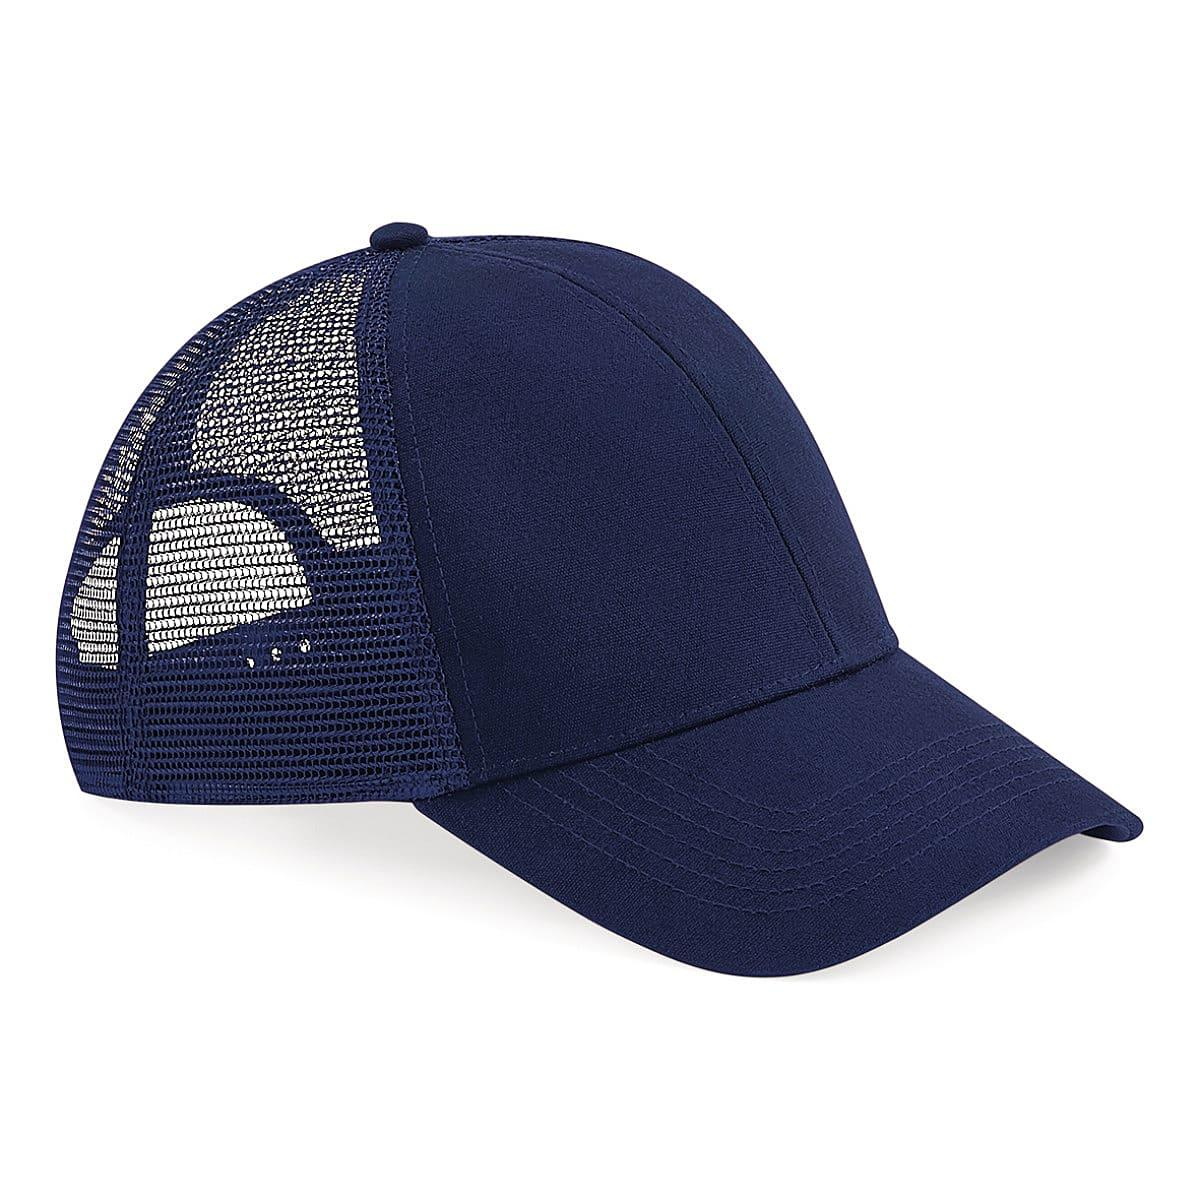 Beechfield Organic Cotton Trucker Cap in Oxford Navy (Product Code: B60)